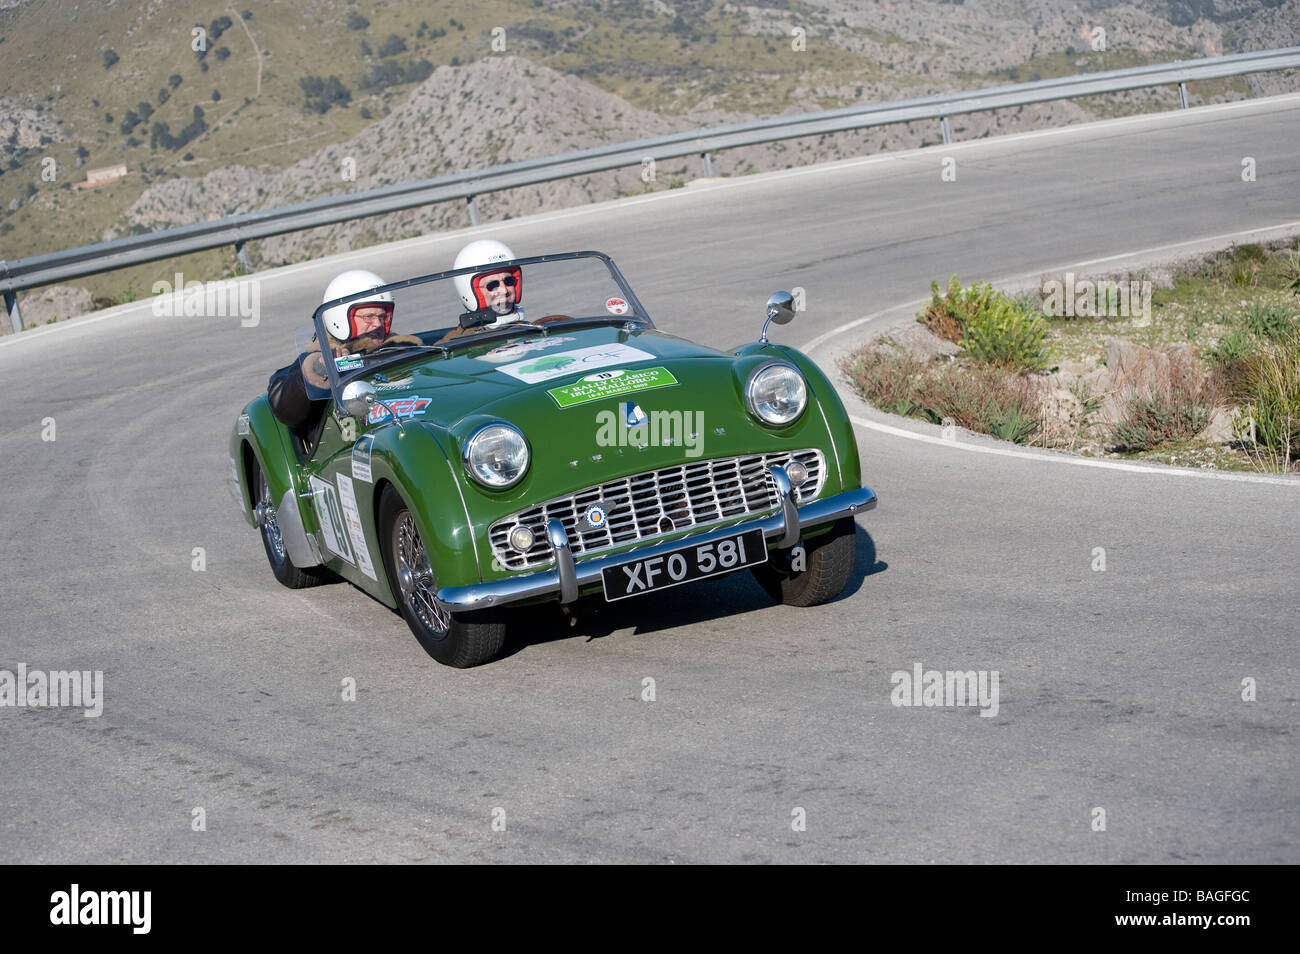 Green 1960 Triumph Tr3a Classic Sports Car Racing In The